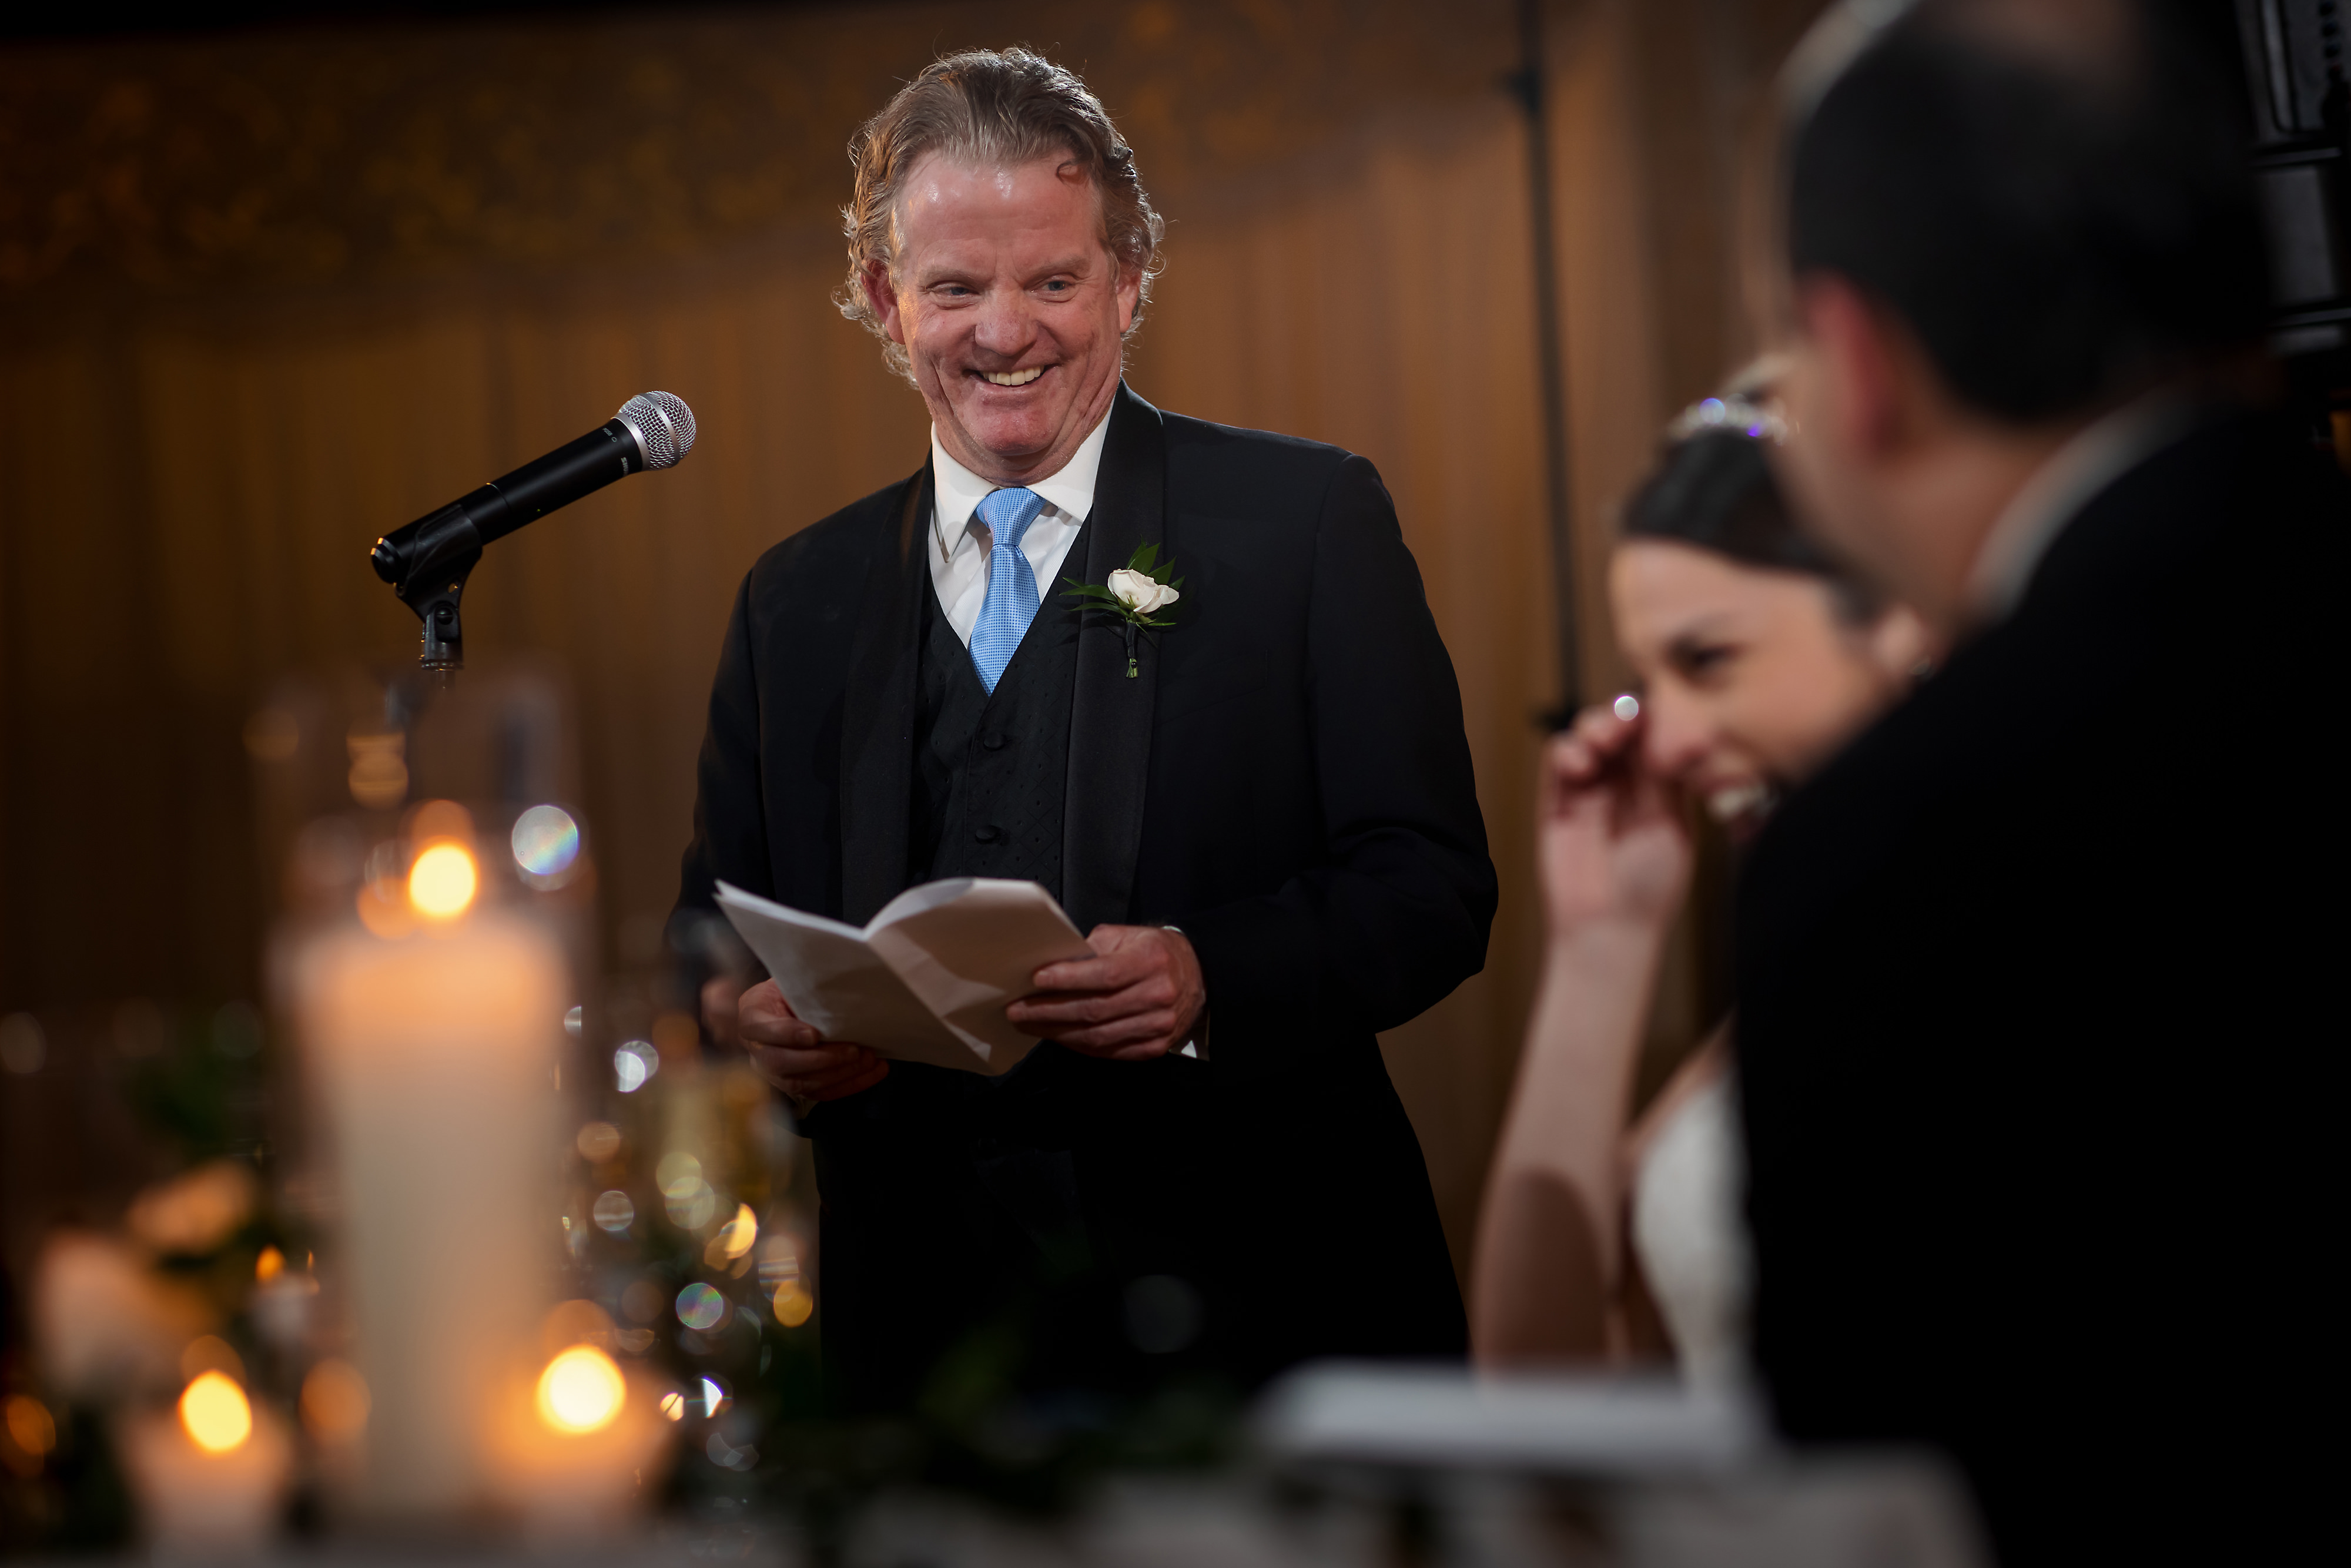 Father of the bride toast during wedding reception at the Rookery Building in Chicago